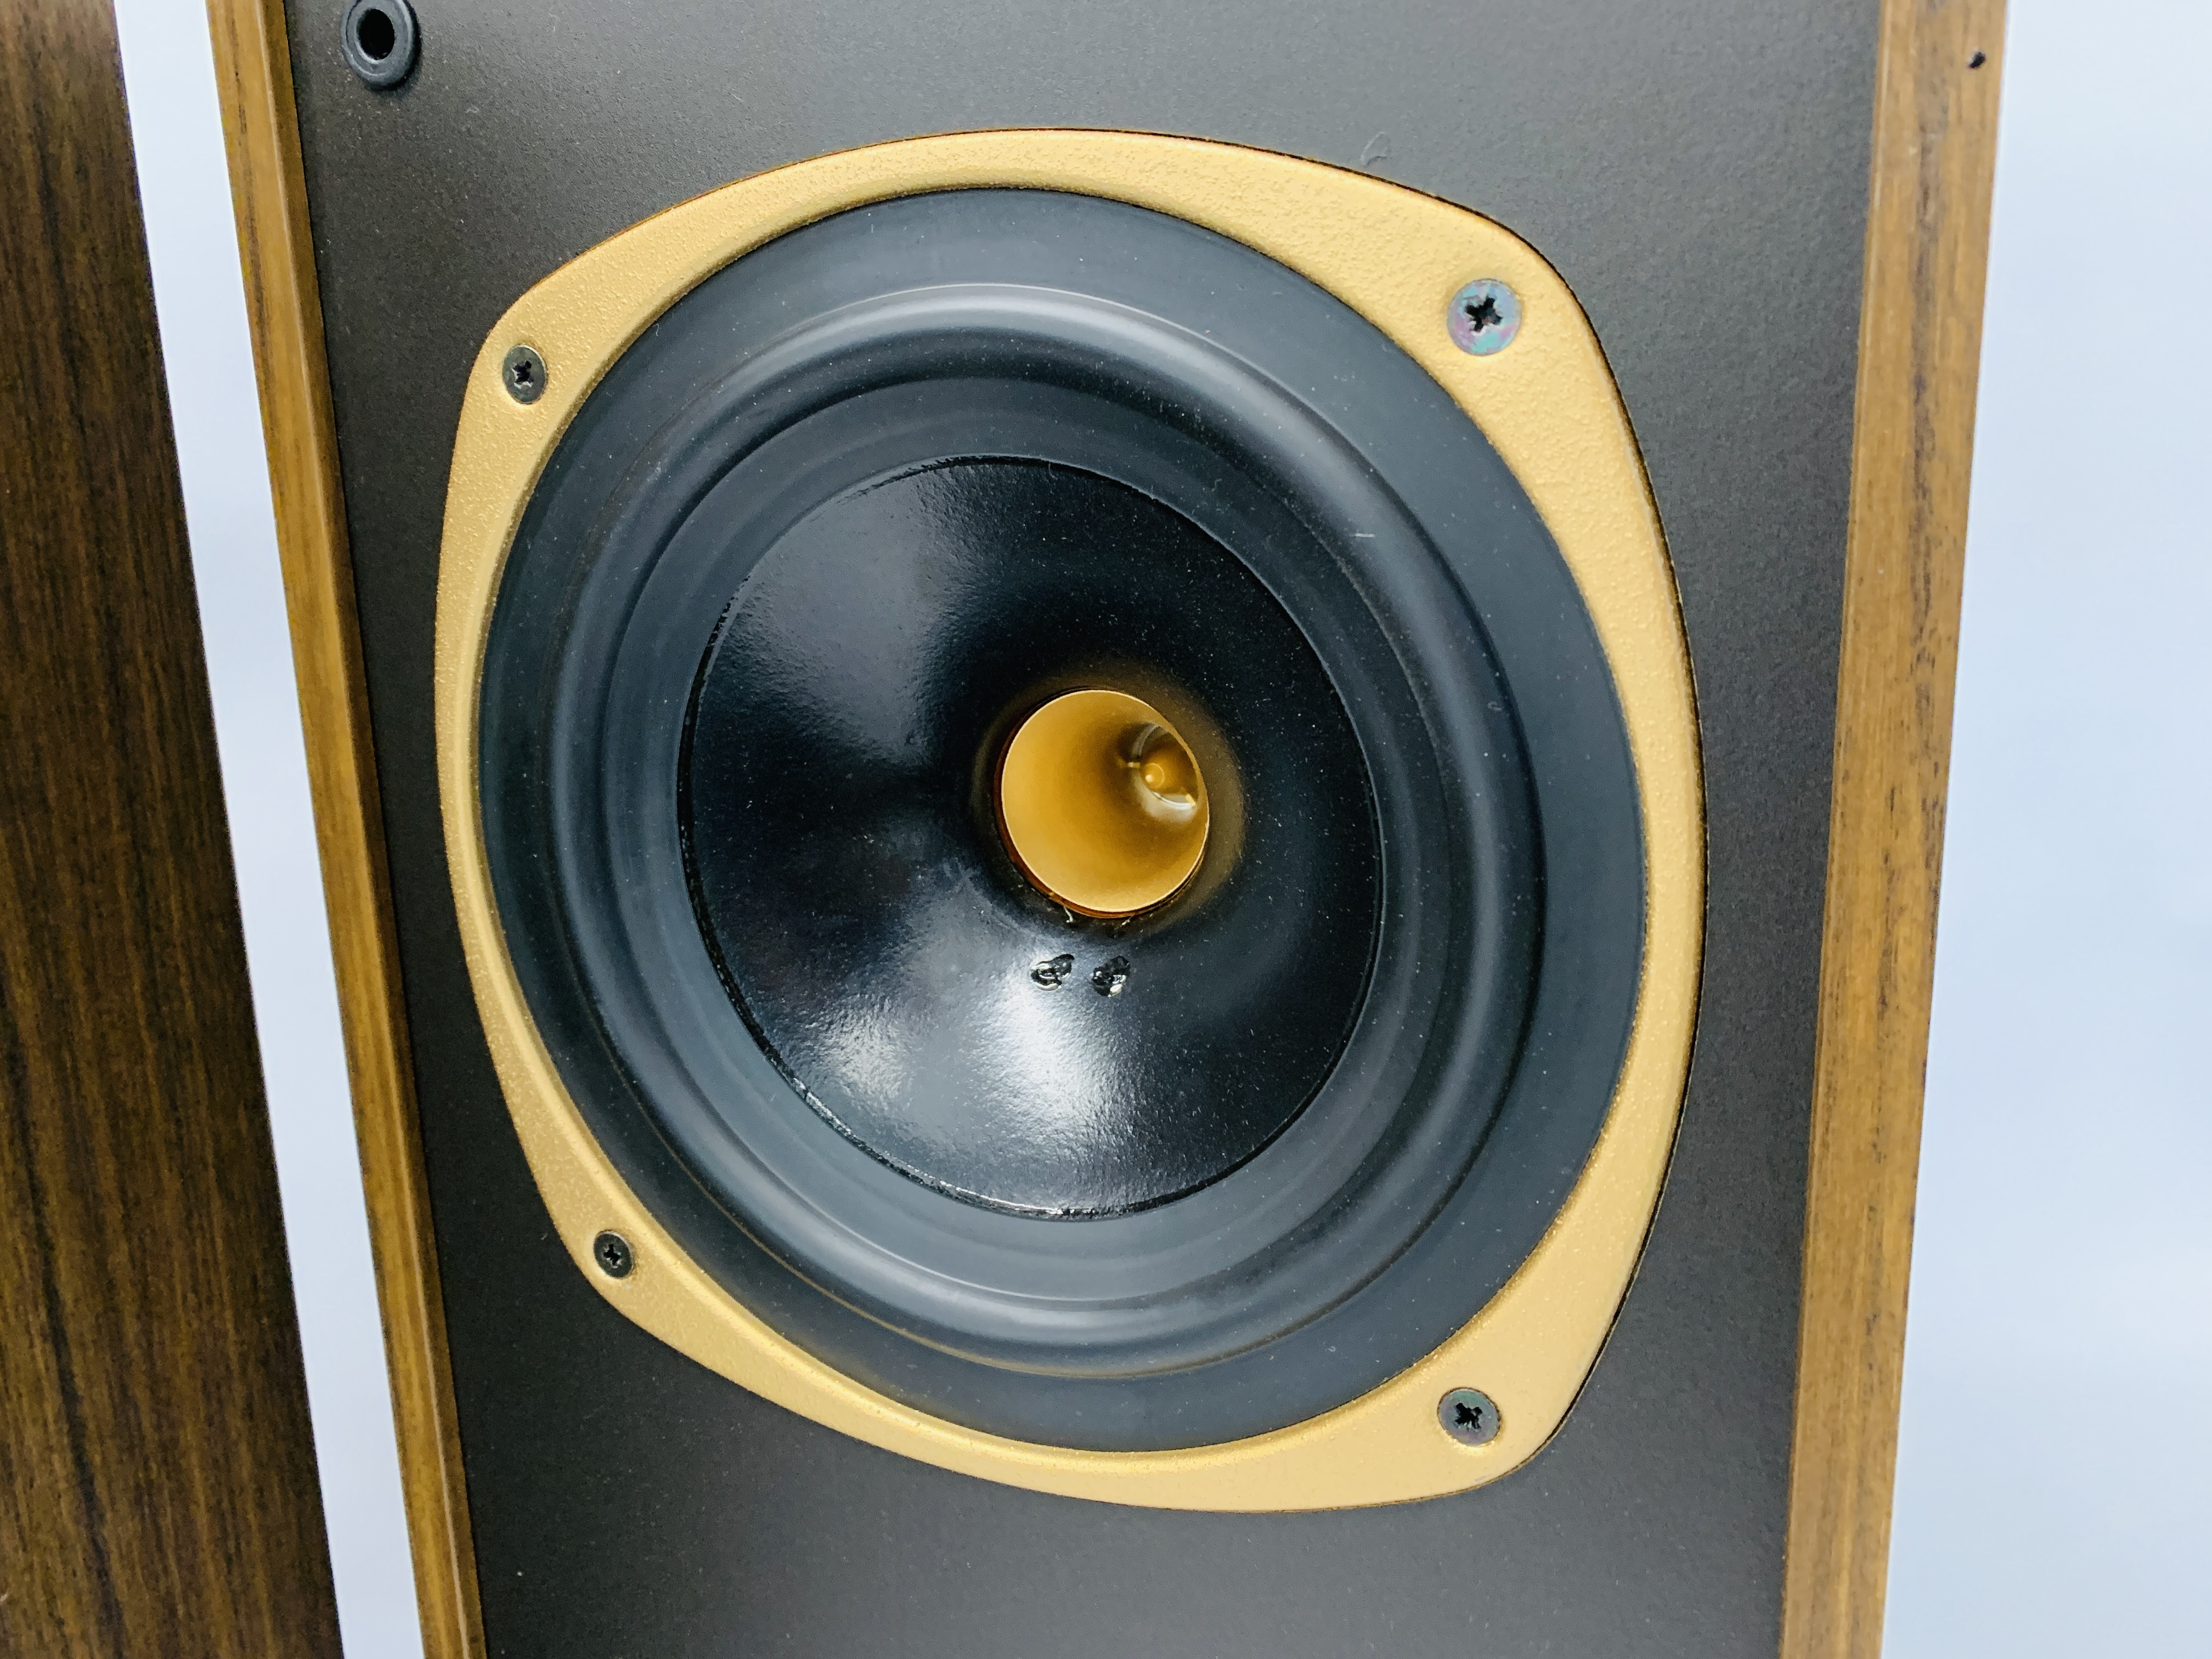 A PAIR OF DC-100 DUAL CONCENTRIC LOUD SPEAKERS - SOLD AS SEEN - Image 6 of 12